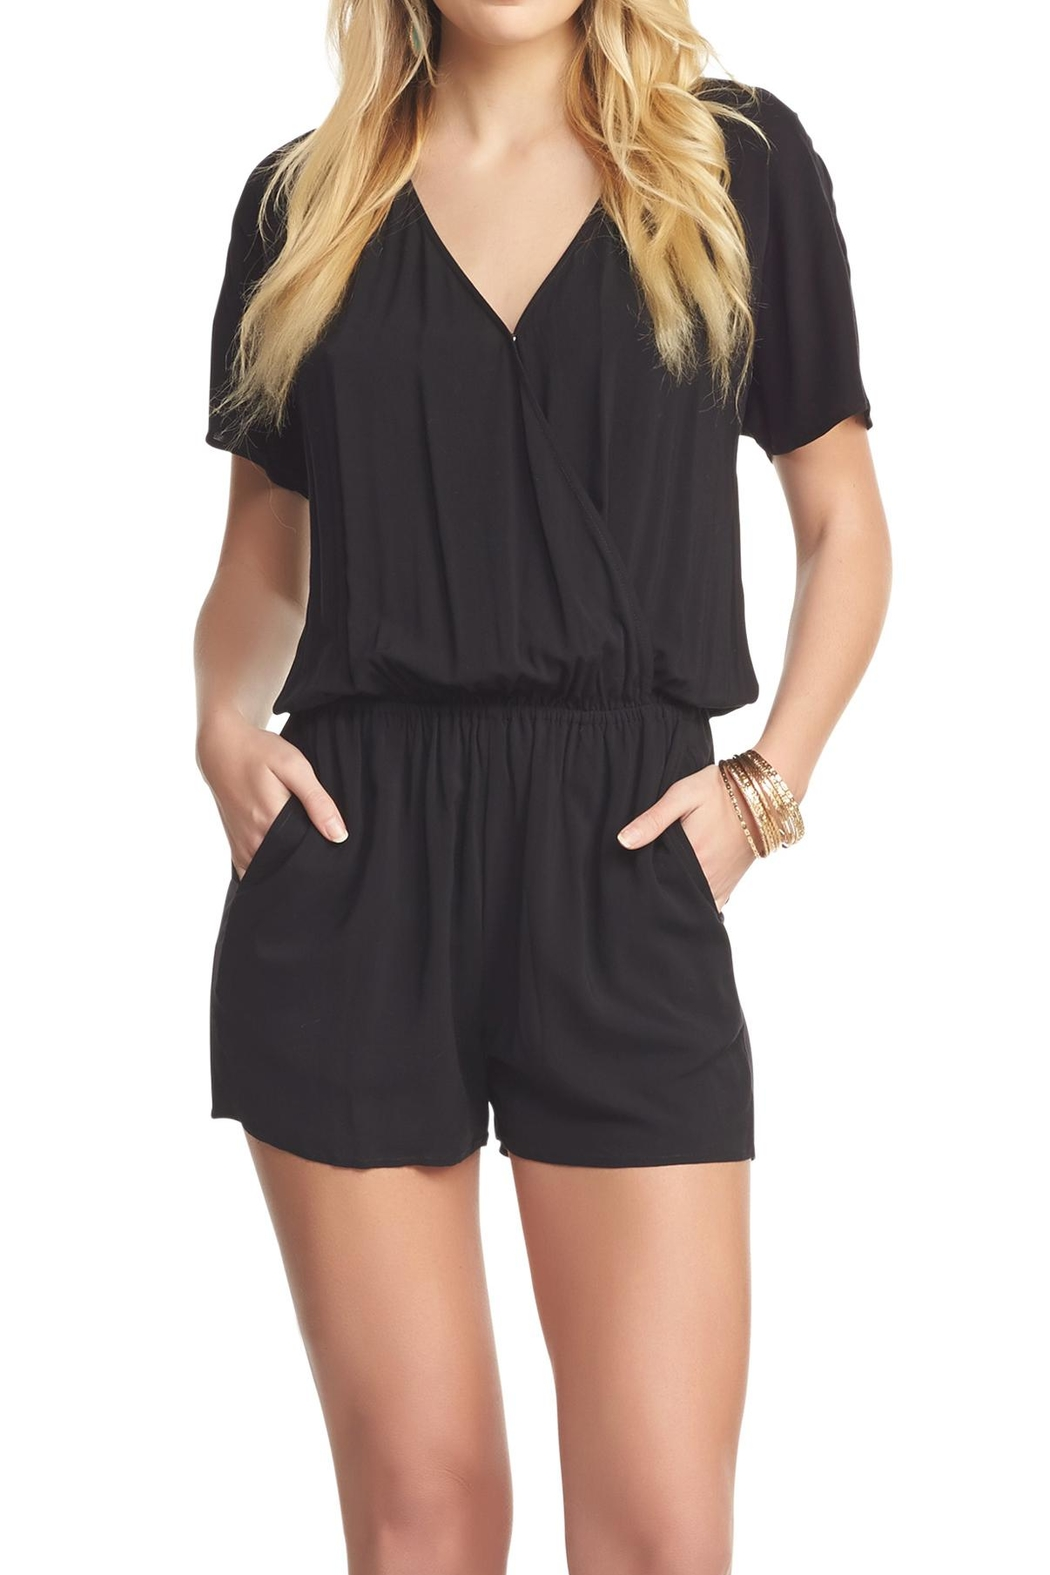 Tart Collections Black Romper - Main Image